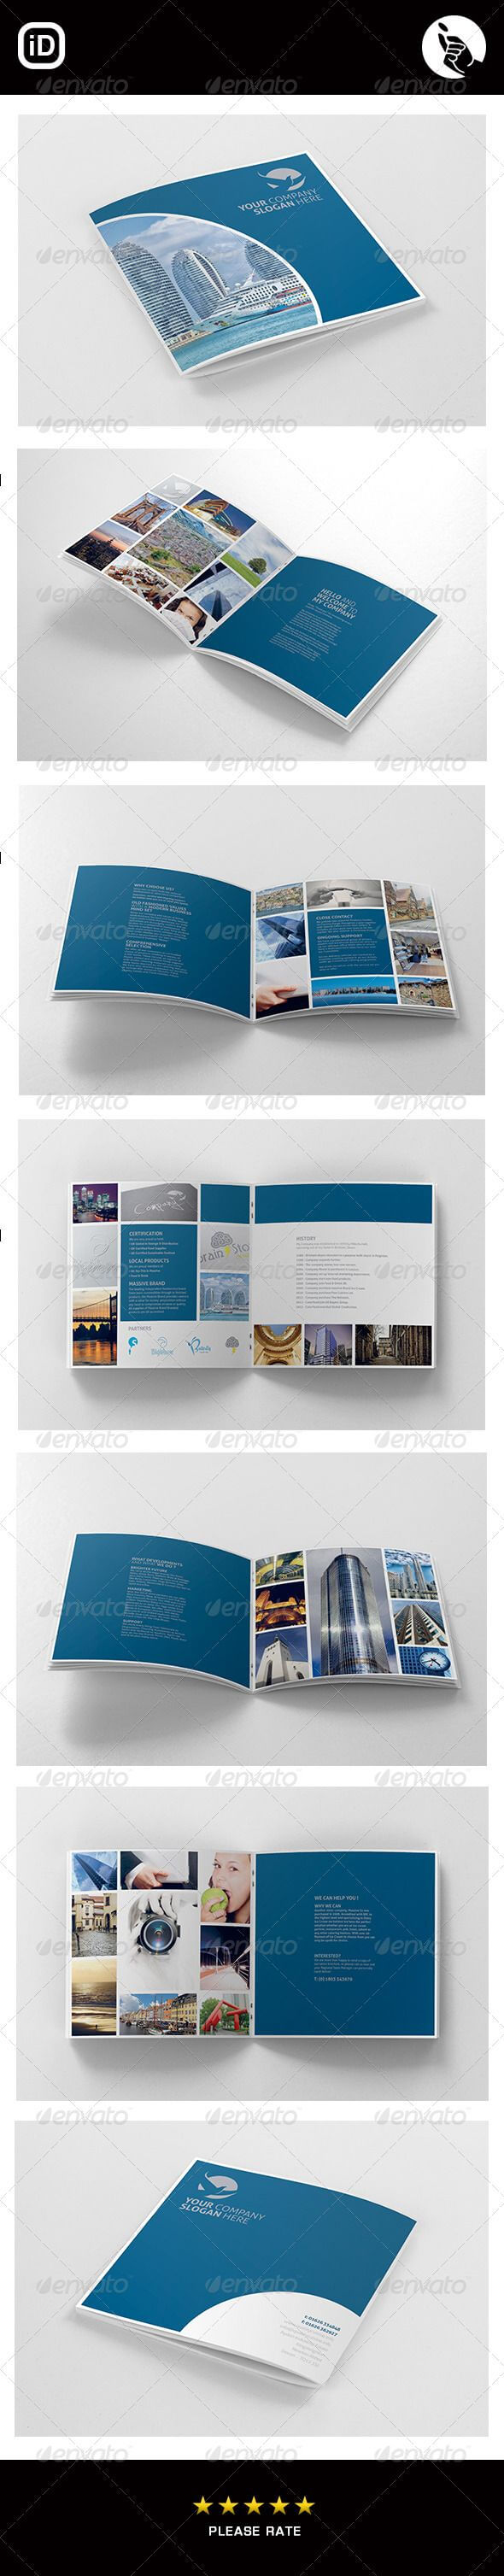 Corporate Square 12 Page Brochure | Design: Layout Intended For 12 Page Brochure Template